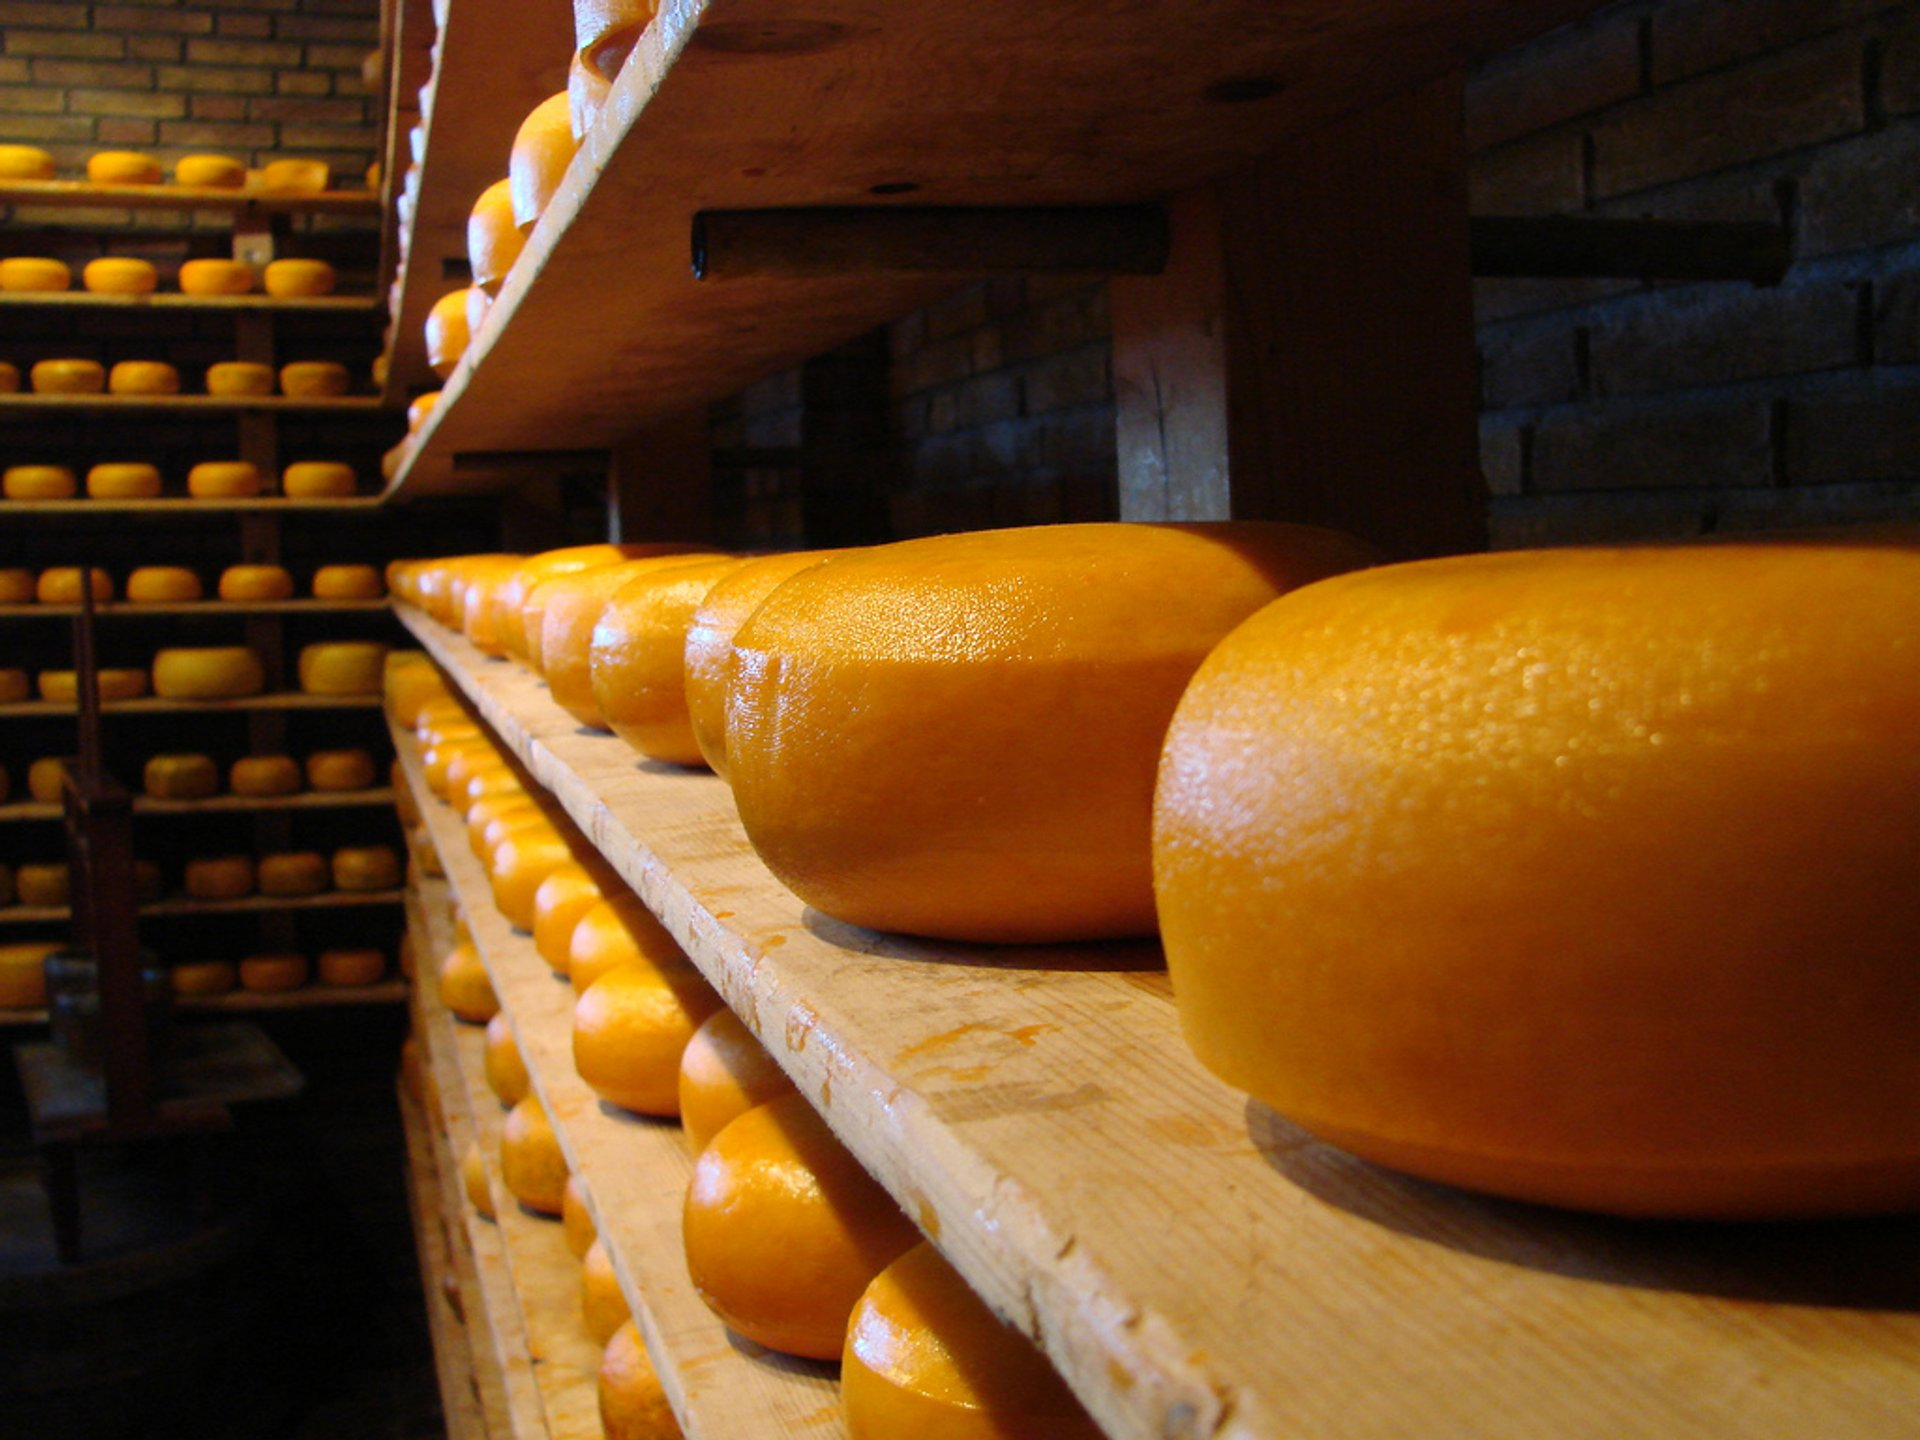 Cheese factory in Volendam 2020